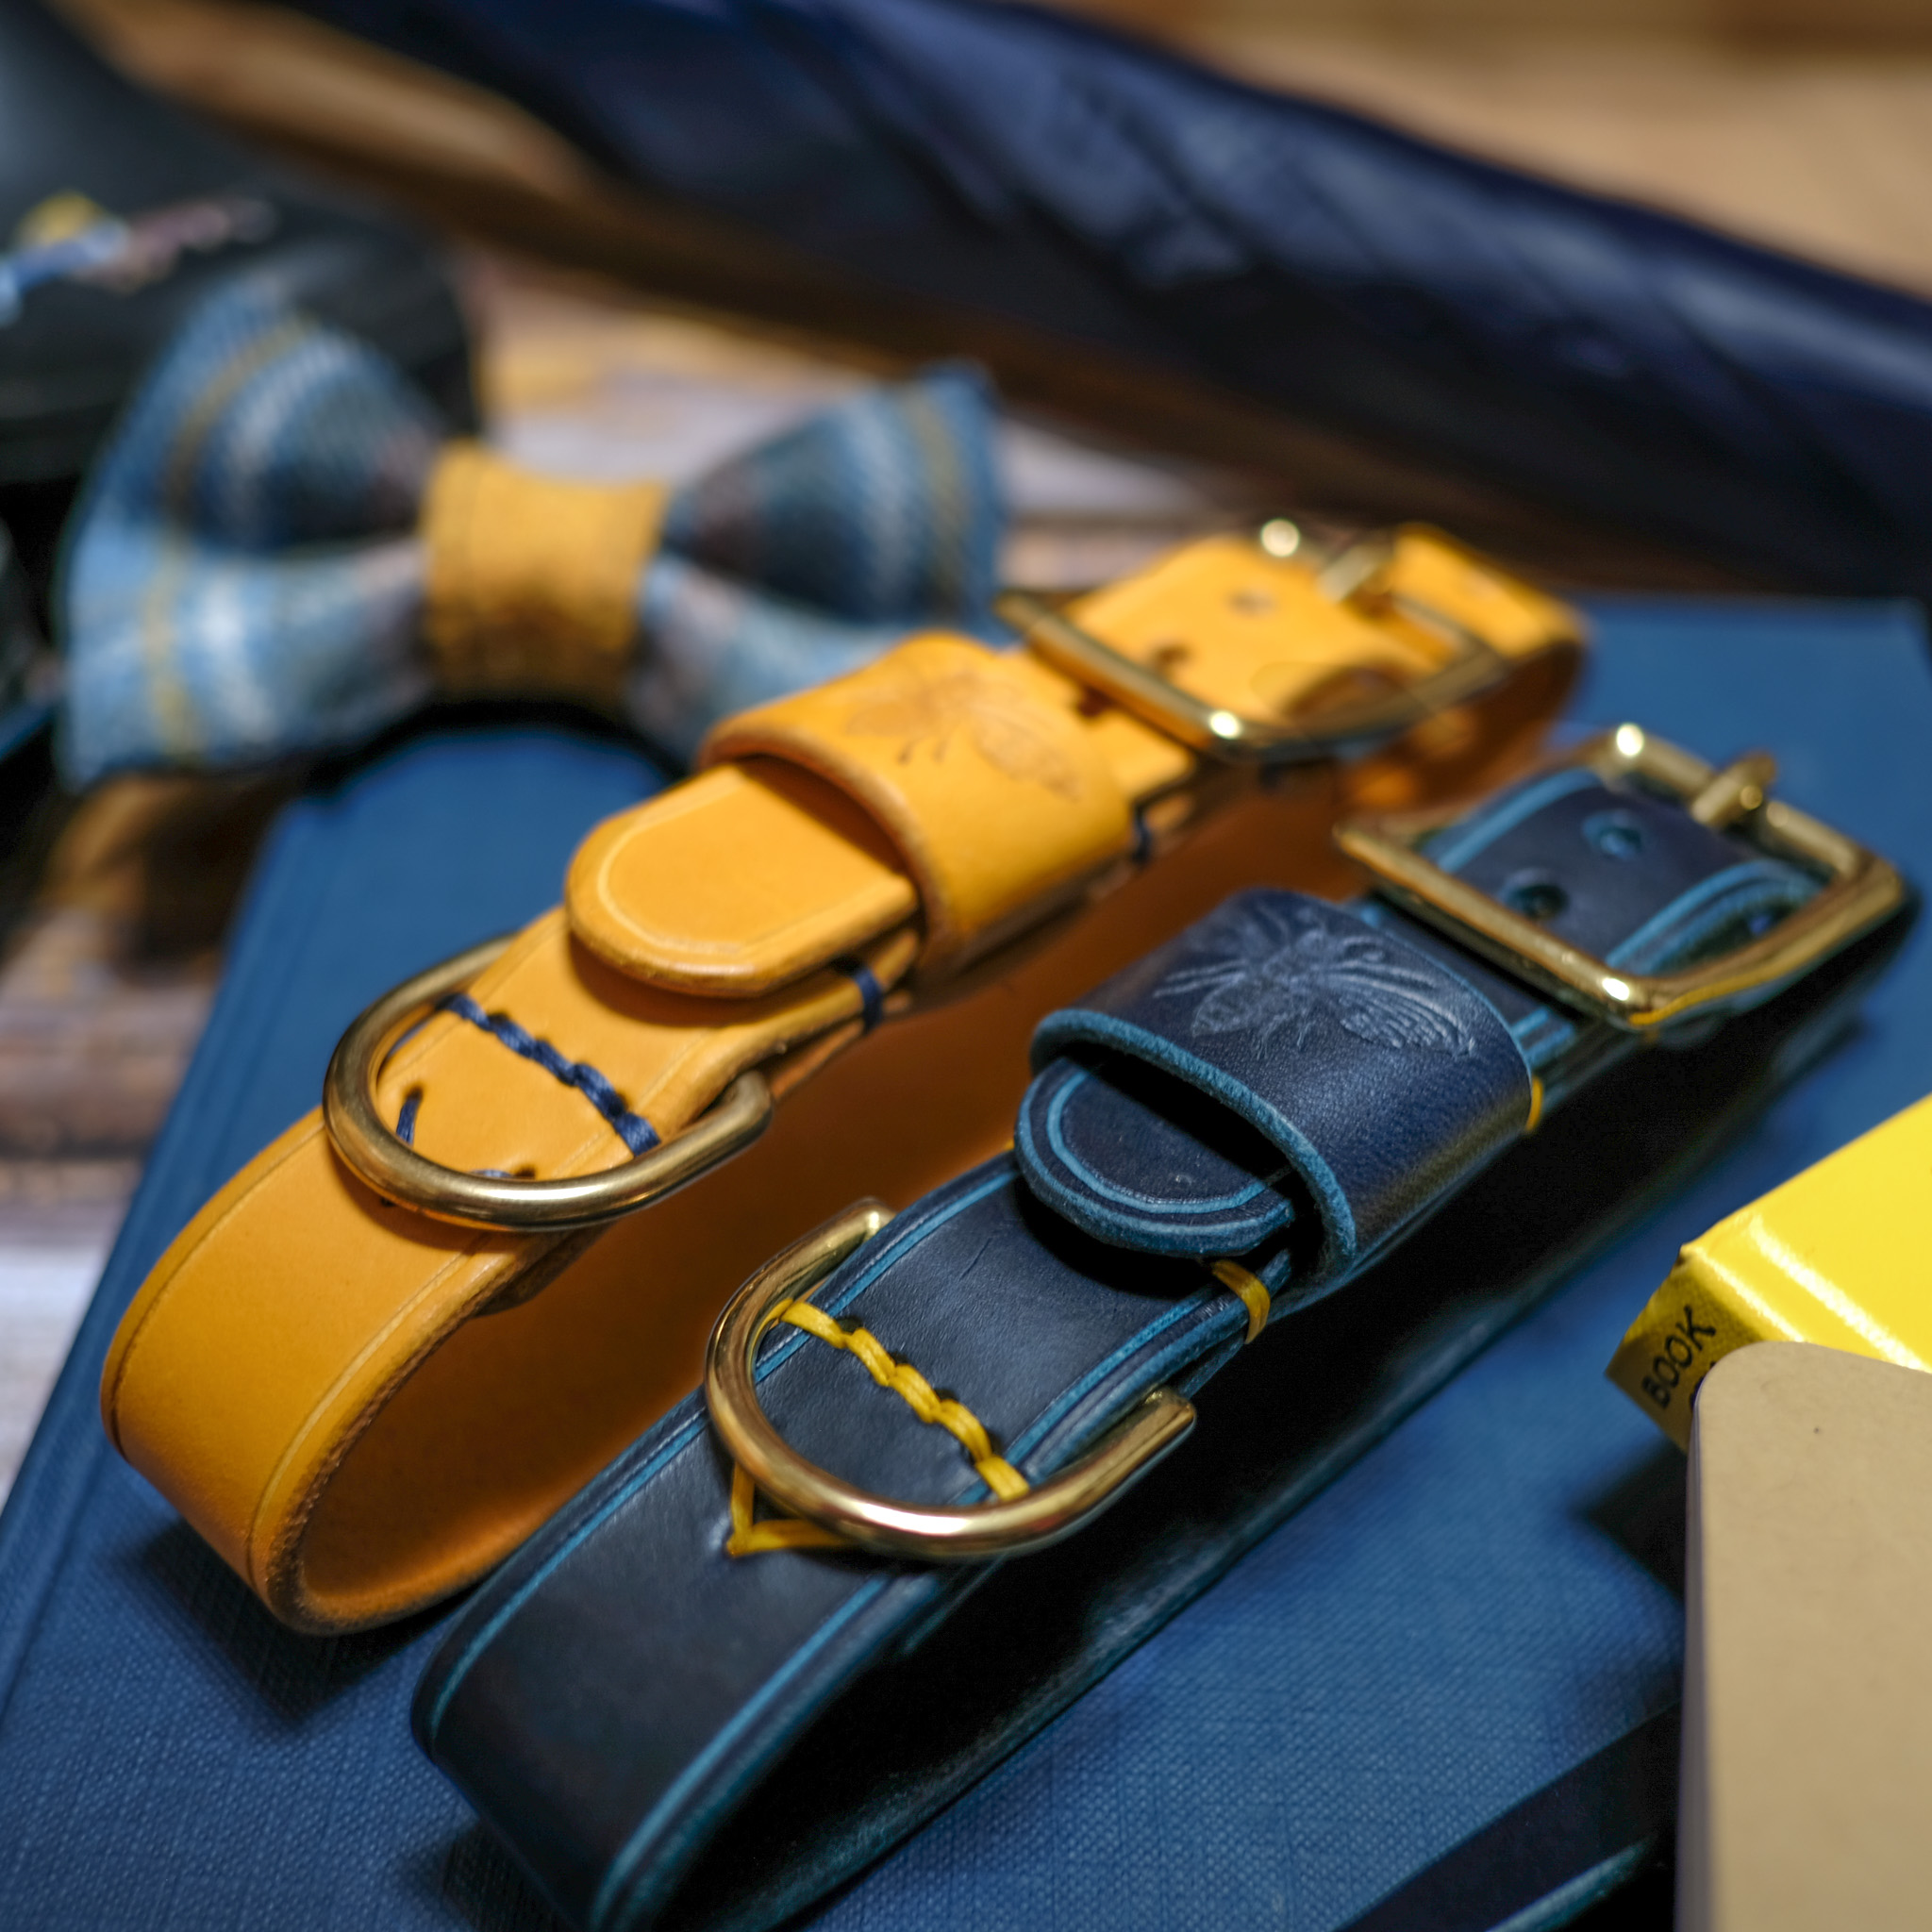 Leather Leads and Collars